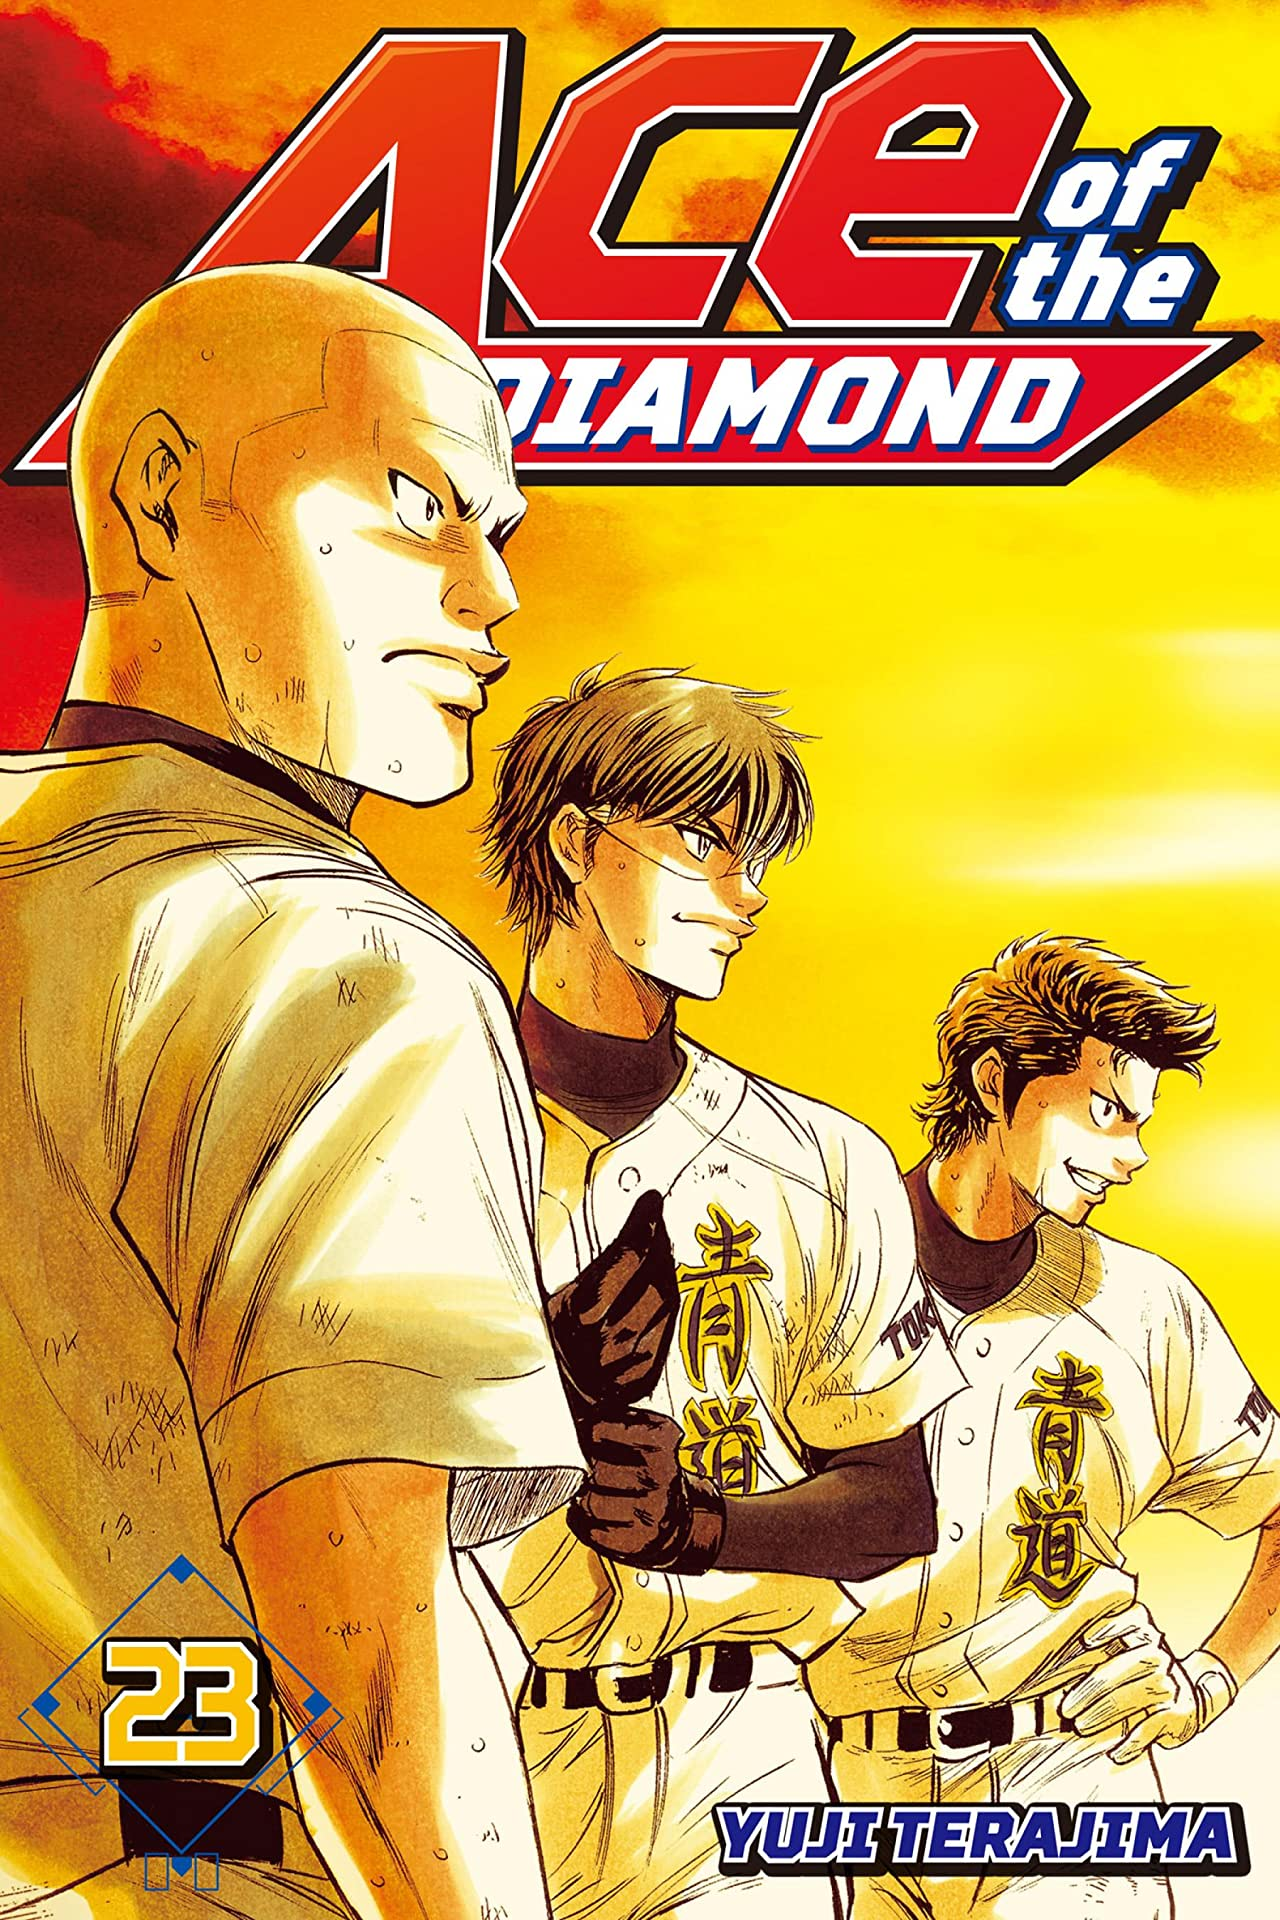 Ace of the Diamond Vol. 23